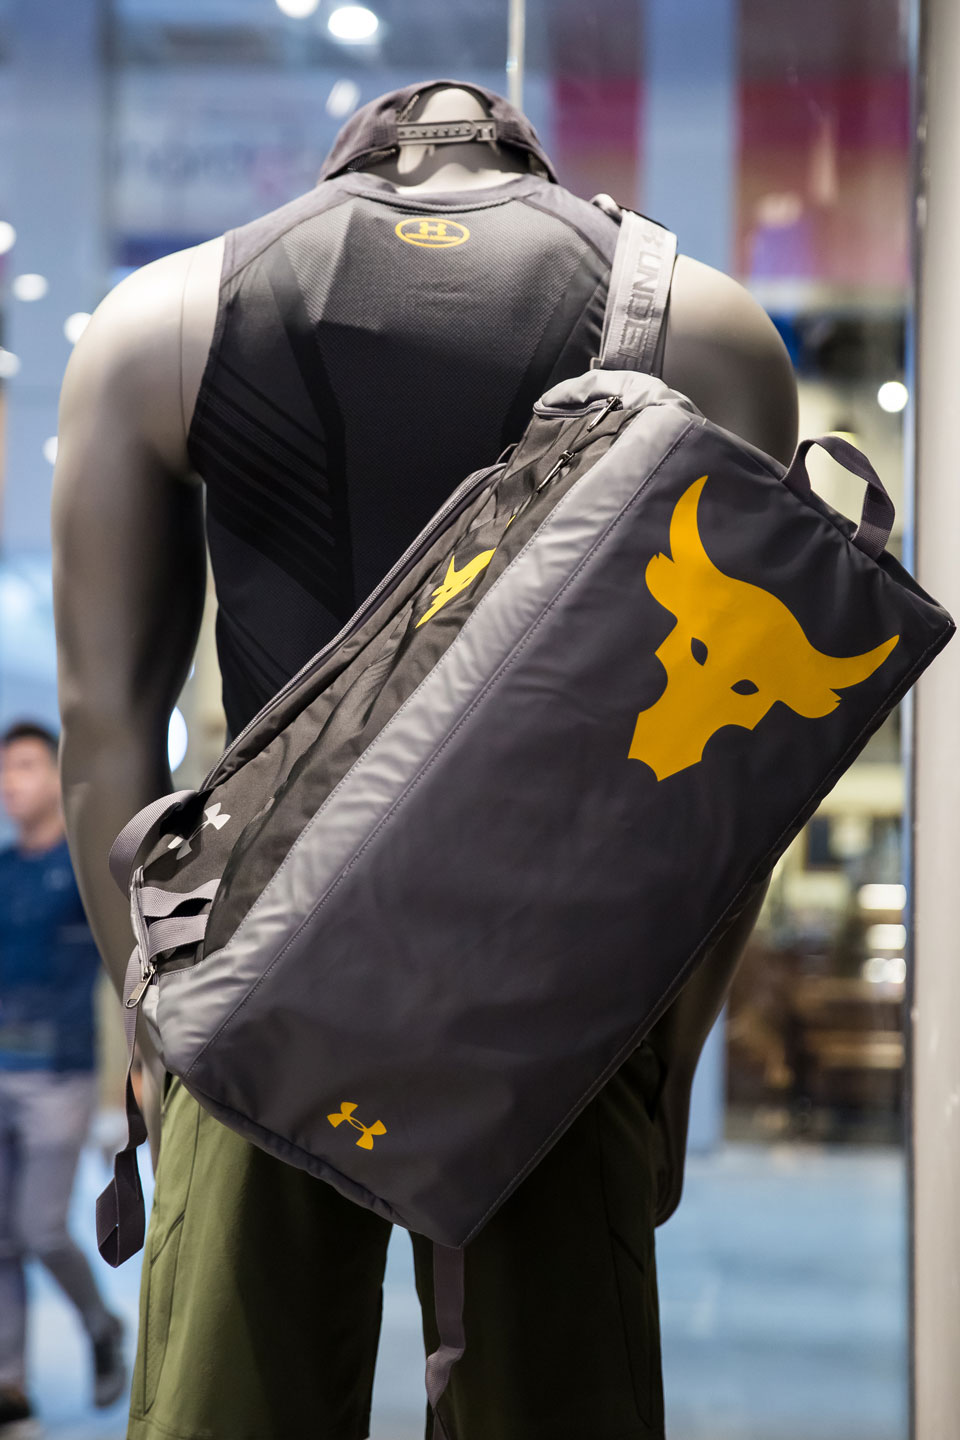 Under Armour's New Flagship Store is Now Open in Orchard Central